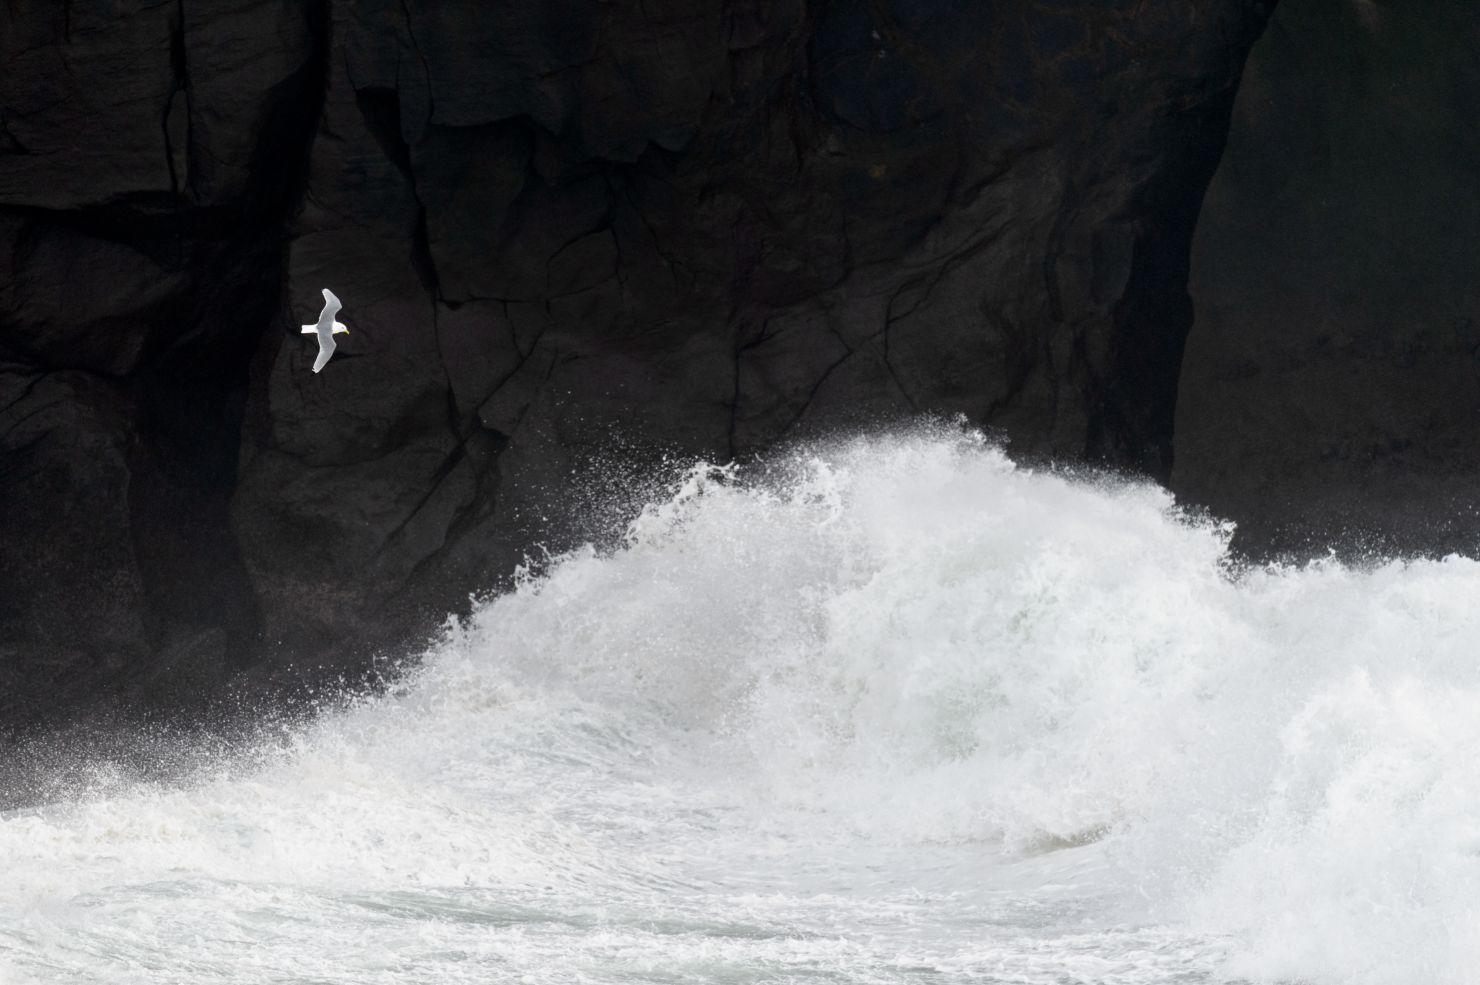 Kittiwake on a stormy sea